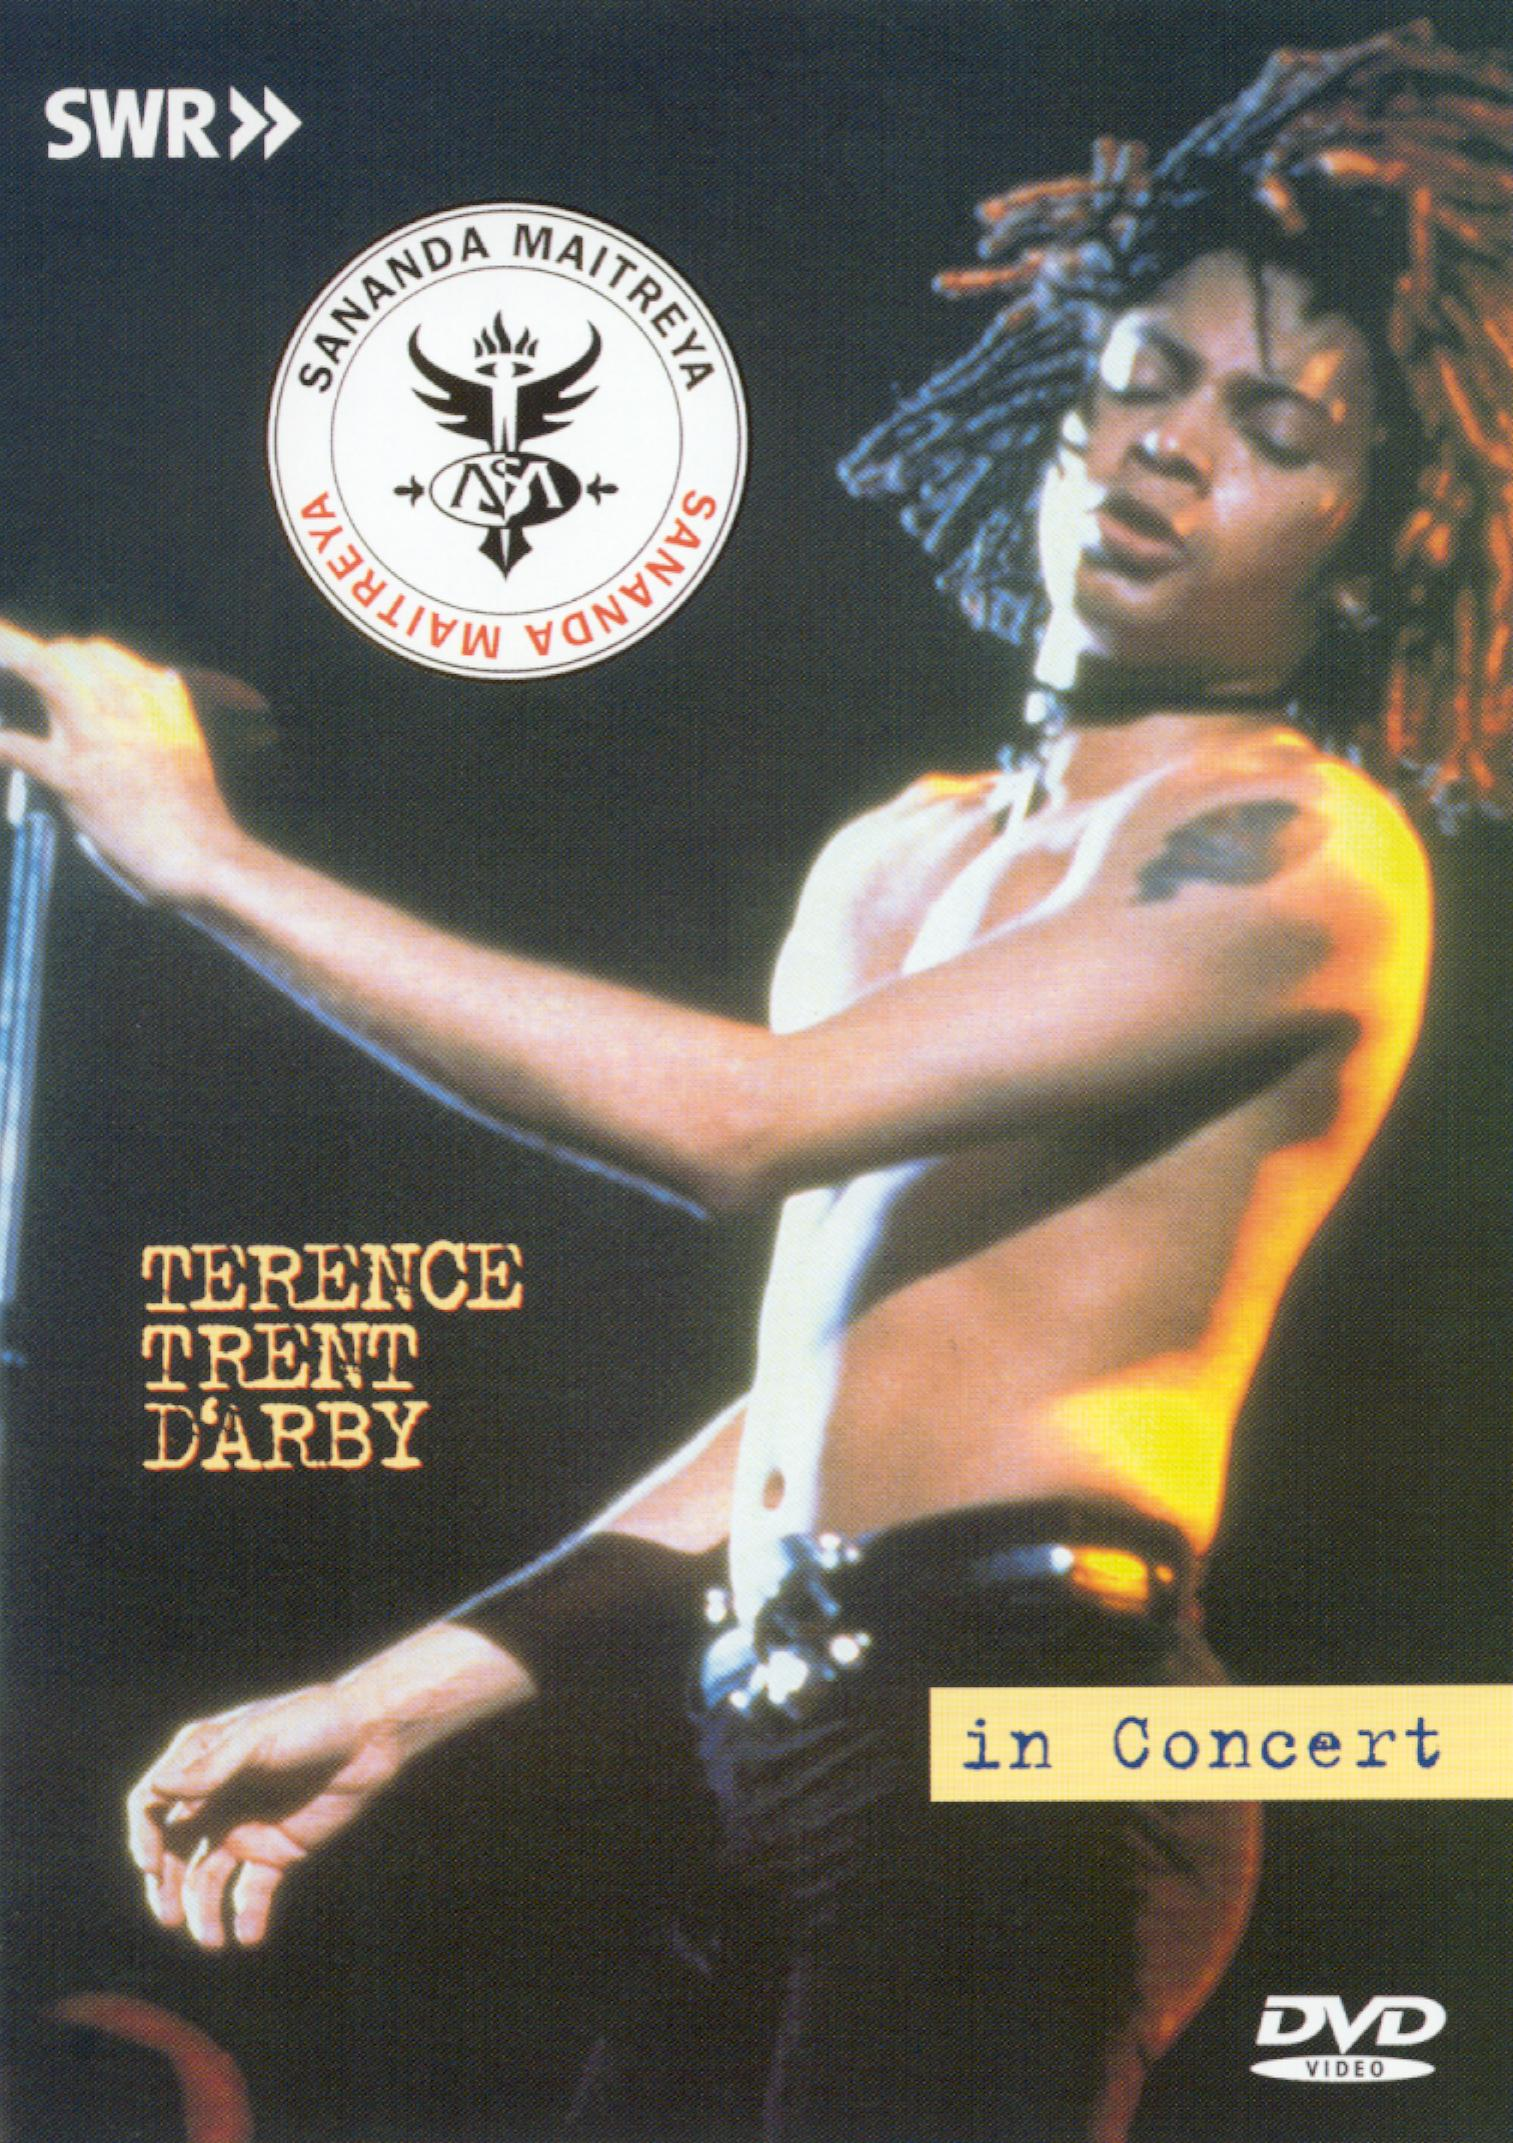 Ohne Filter - Musik Pur: Terence Trent d'Arby in Concert